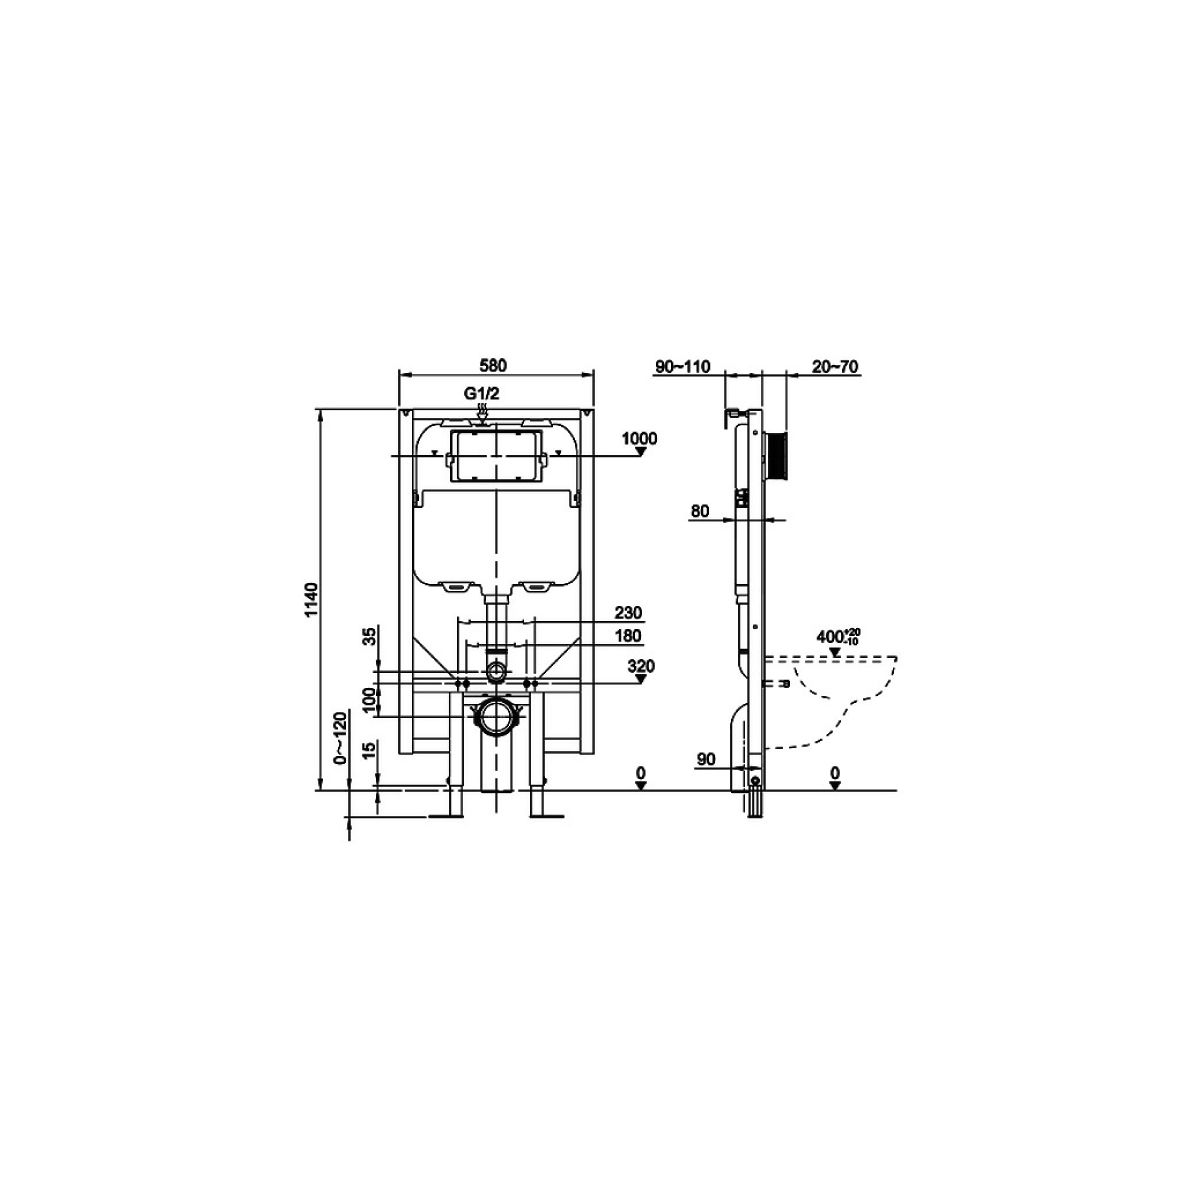 RAK Ecofix Concealed Cistern with Metal Support Frame 580mm Dimensions